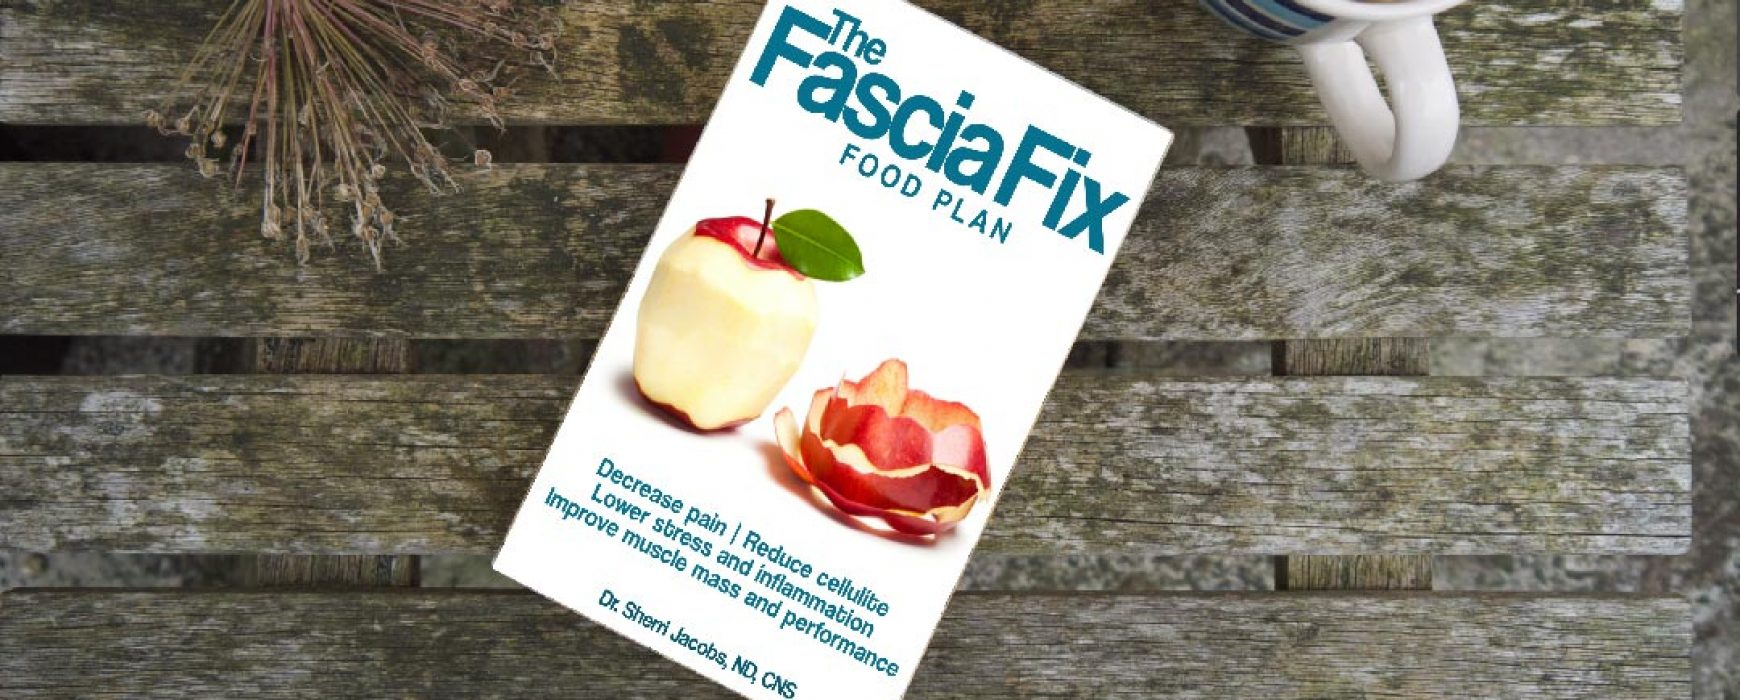 Fascia Fix Food Plan – My New Book